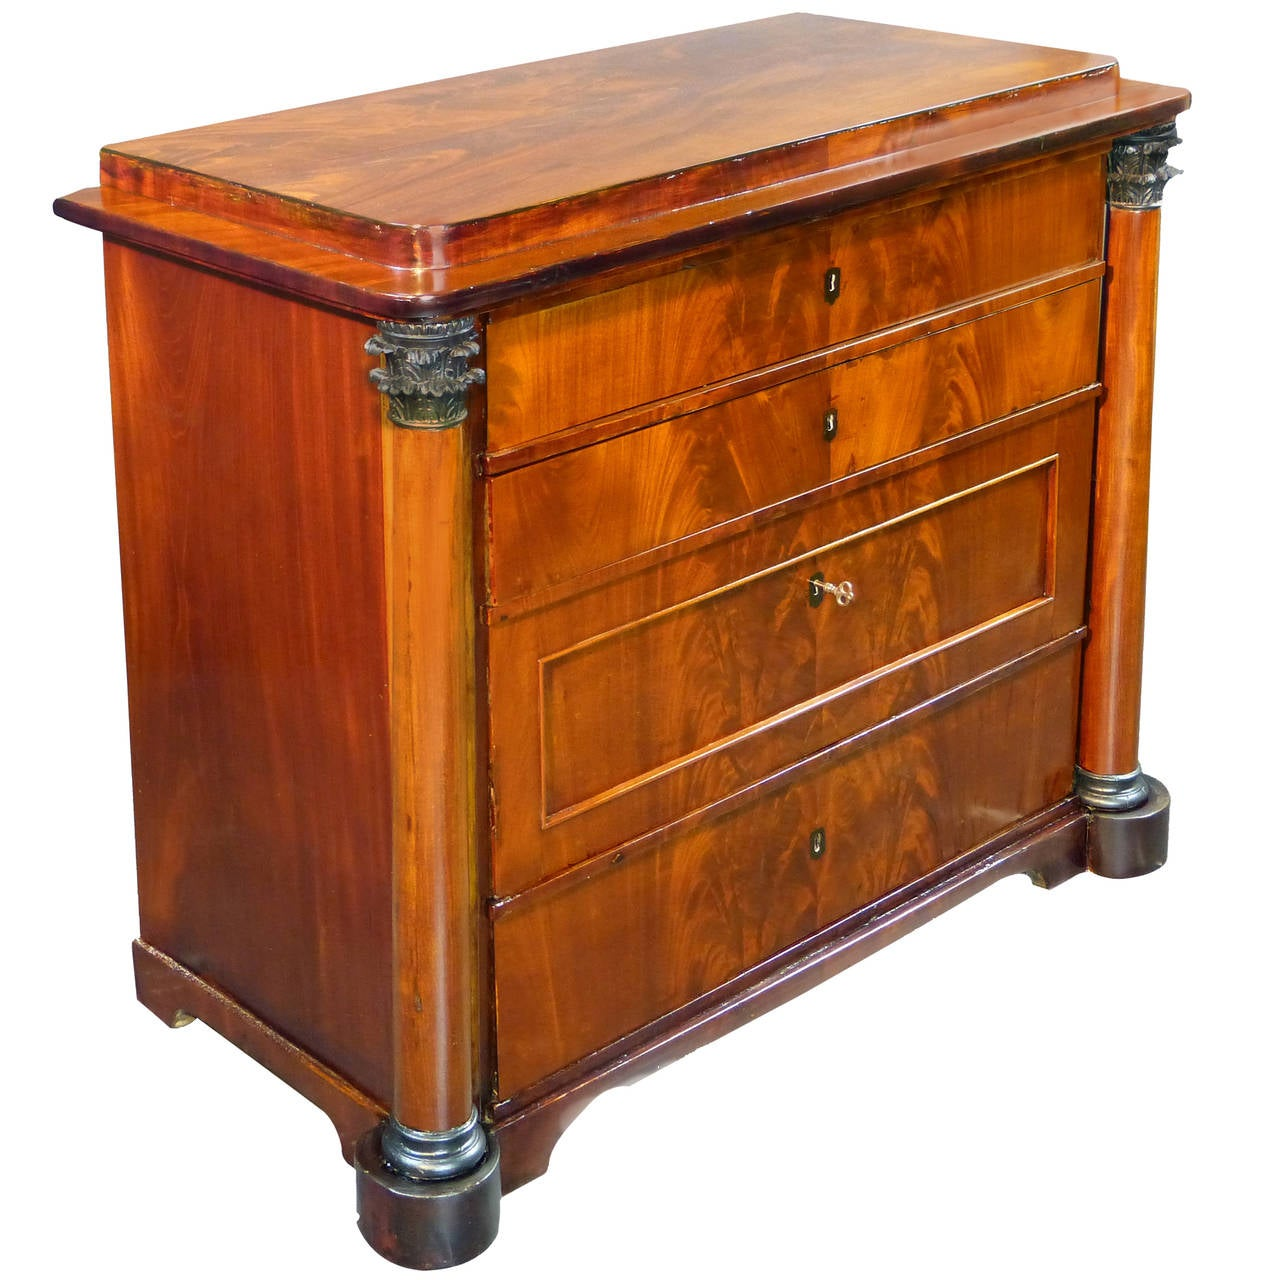 Early 19th Century Danish Biedermeier Commode Chest of Drawers